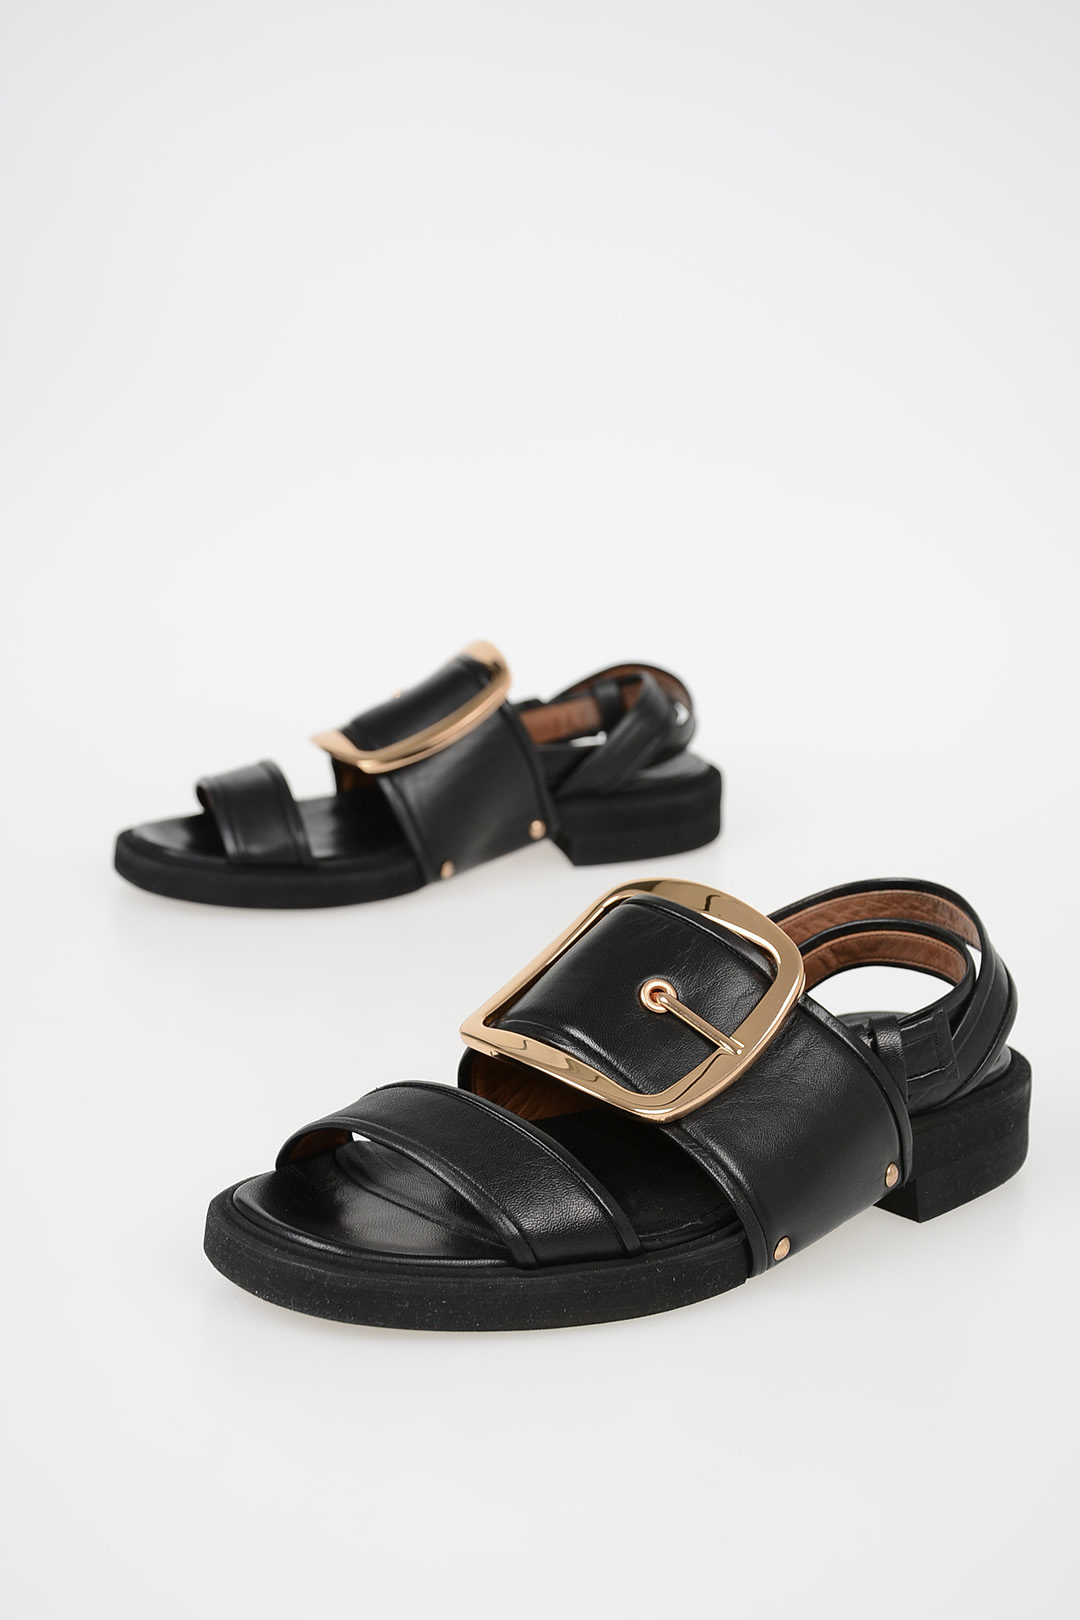 1b817920368a Givenchy Leather Sandal women - Glamood Outlet